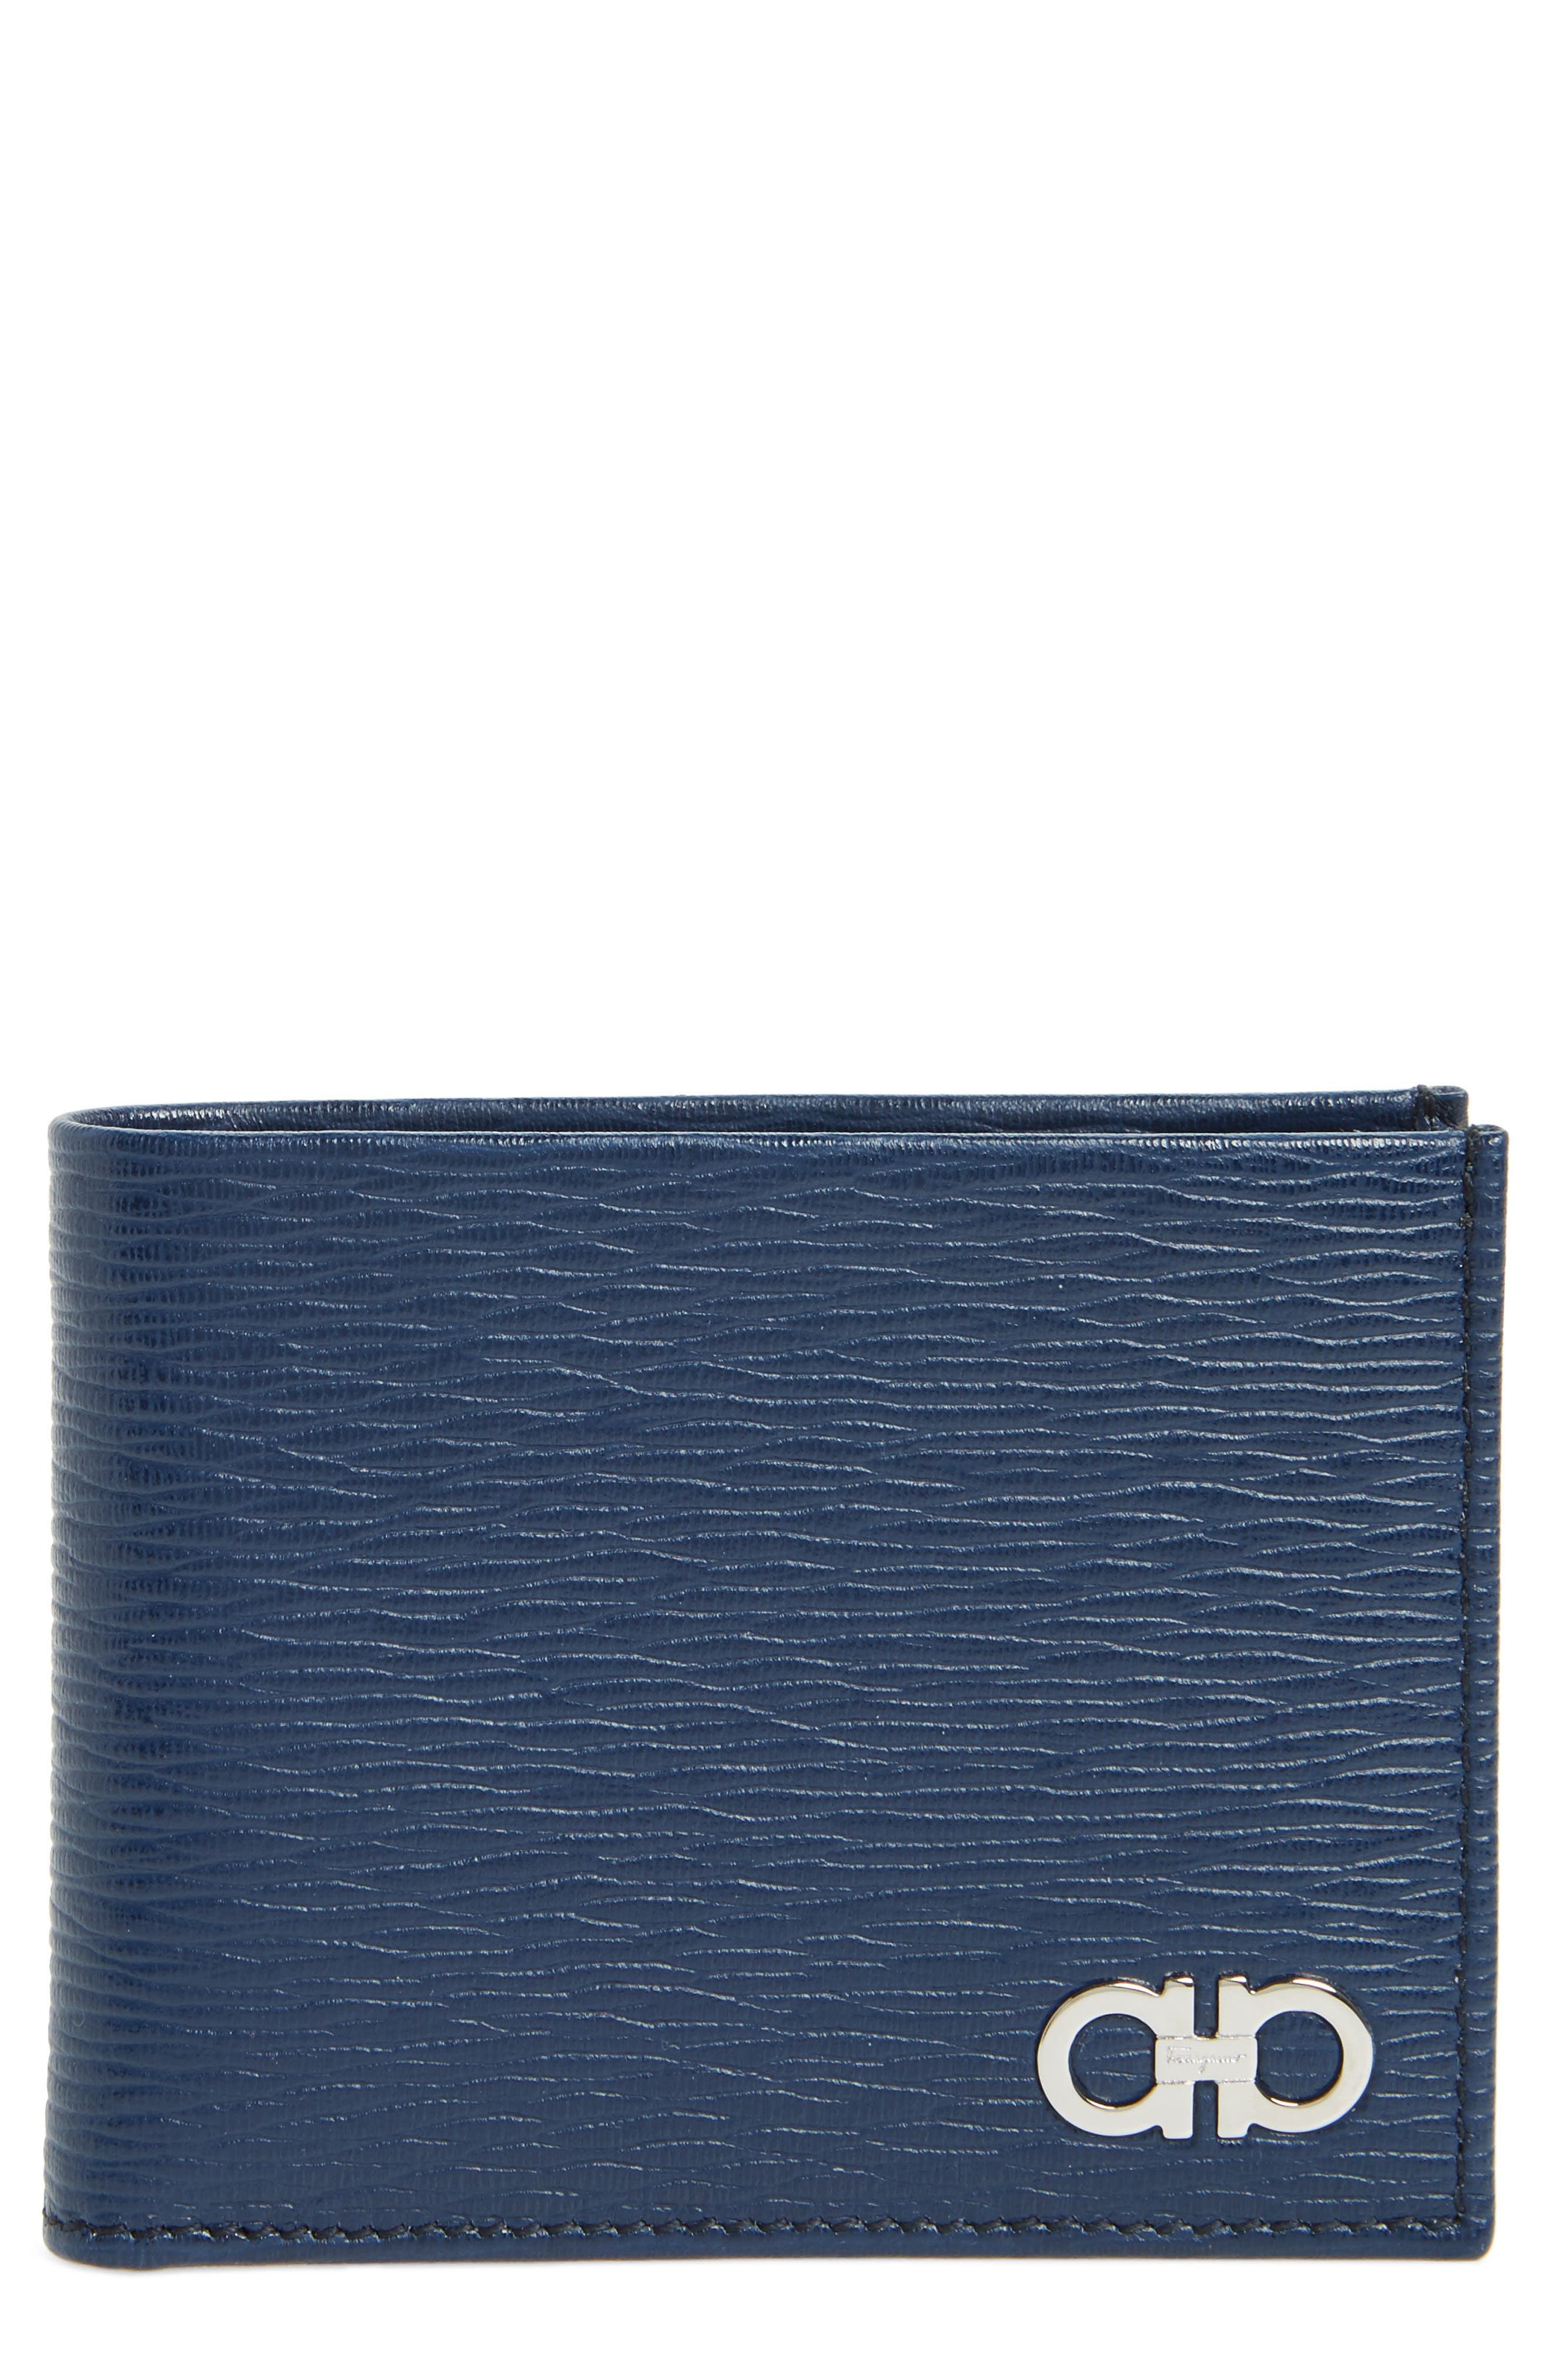 Revival Bifold Leather Wallet,                             Main thumbnail 1, color,                             BLUE